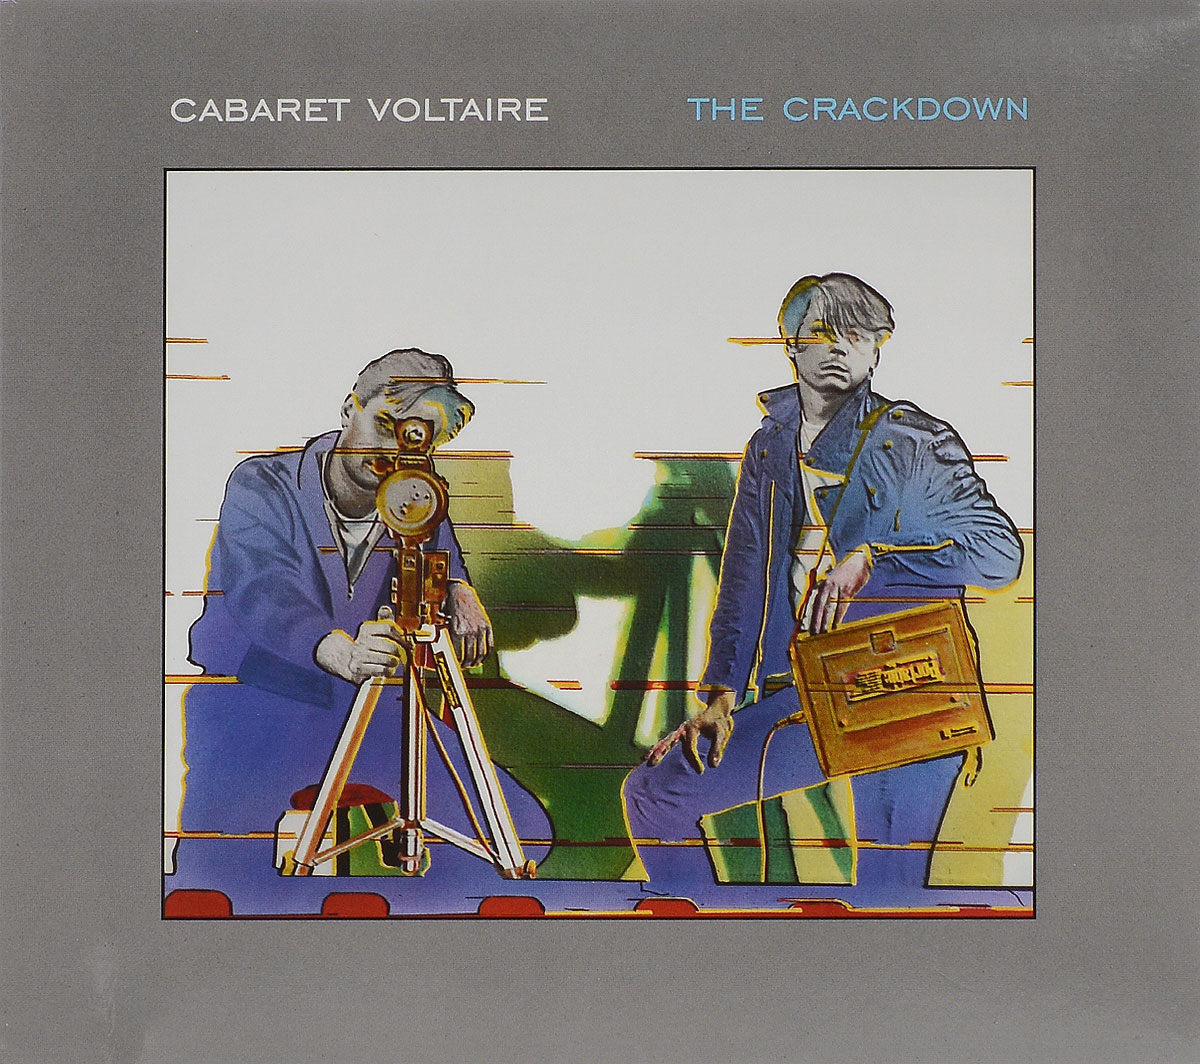 Cabaret Voltaire Cabaret Voltaire The Crackdown